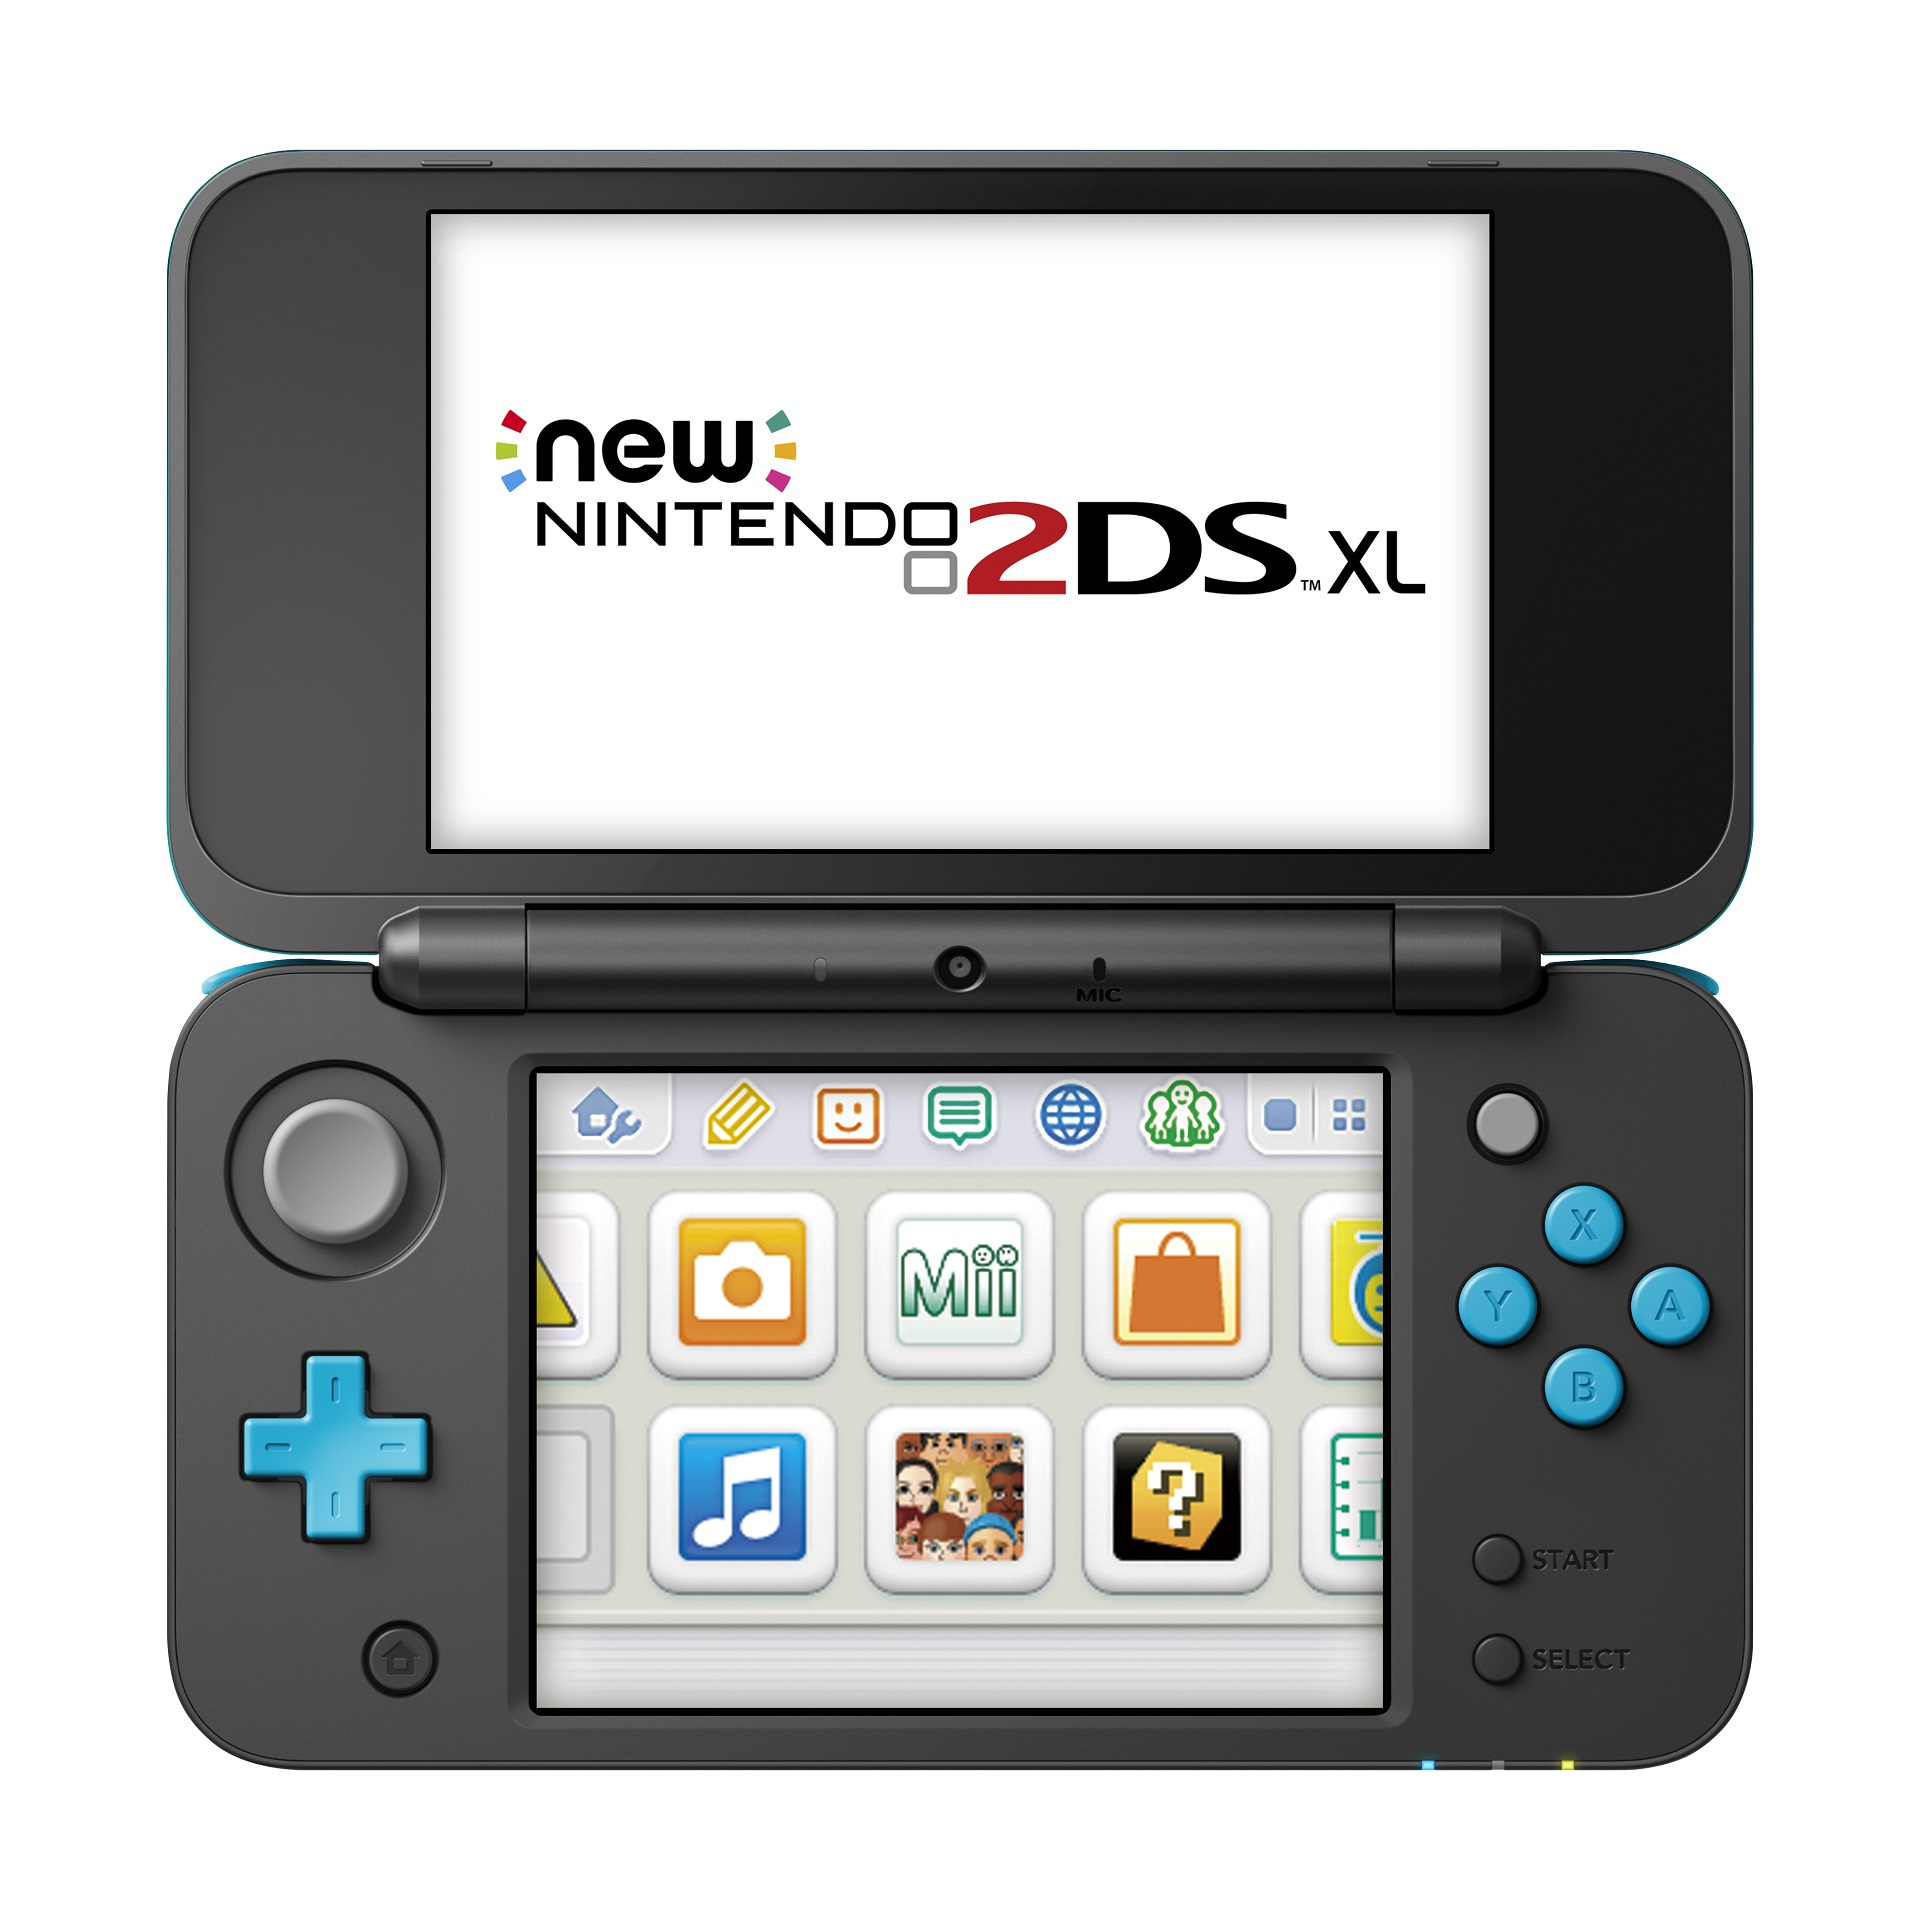 new nintendo 2ds xl prix contenu et photos de la nouvelle console de nintendo. Black Bedroom Furniture Sets. Home Design Ideas